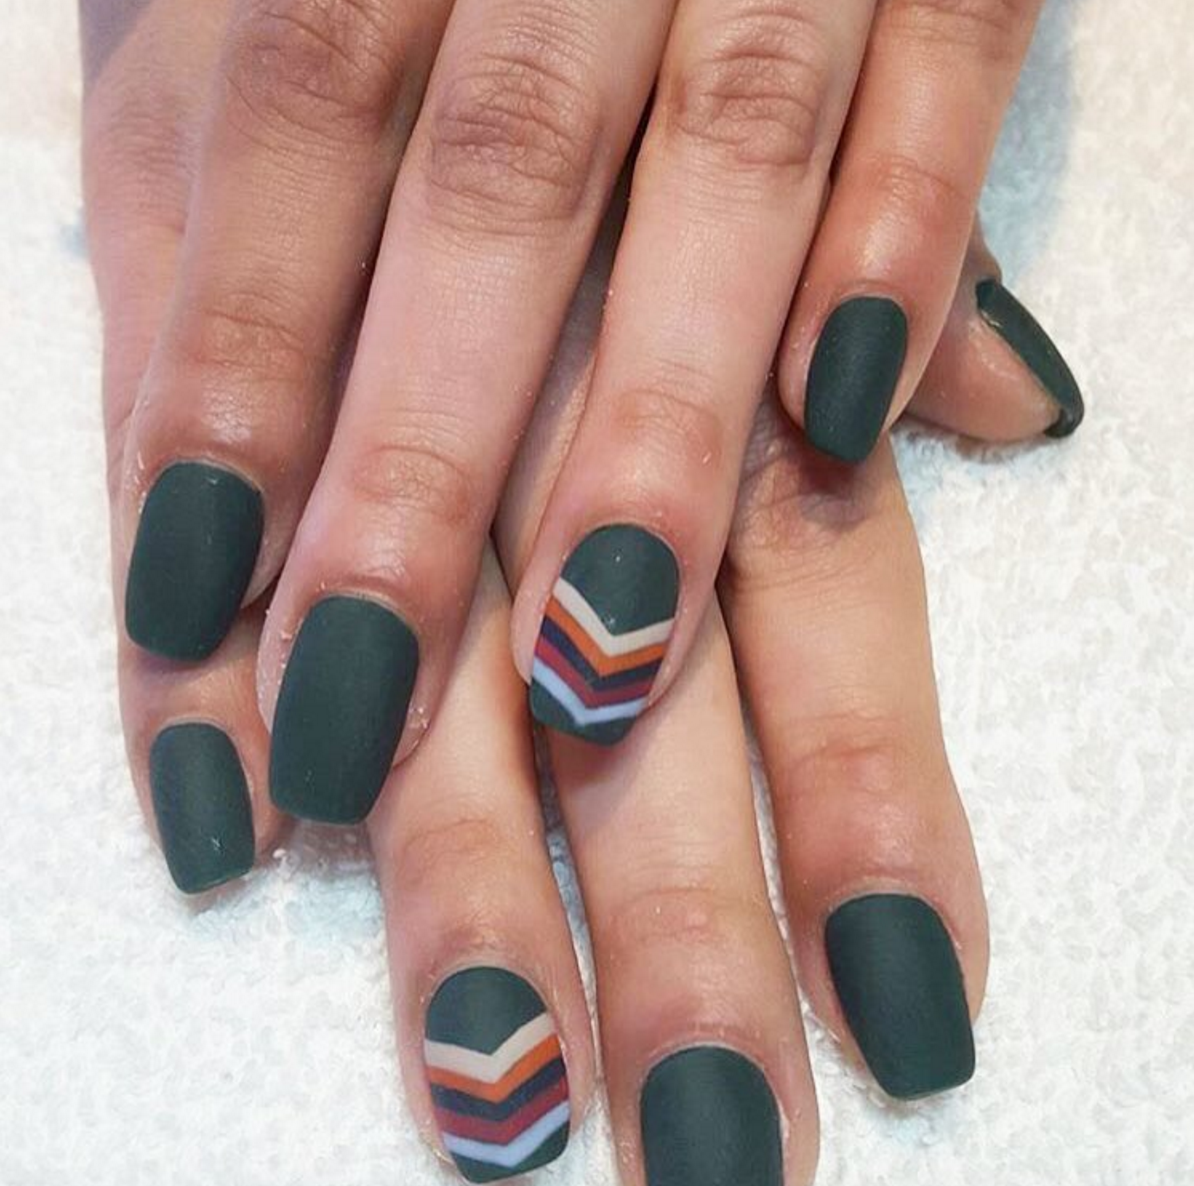 13 Cool Matte Nail Design Ideas - Unique Matte Nail Polish Art